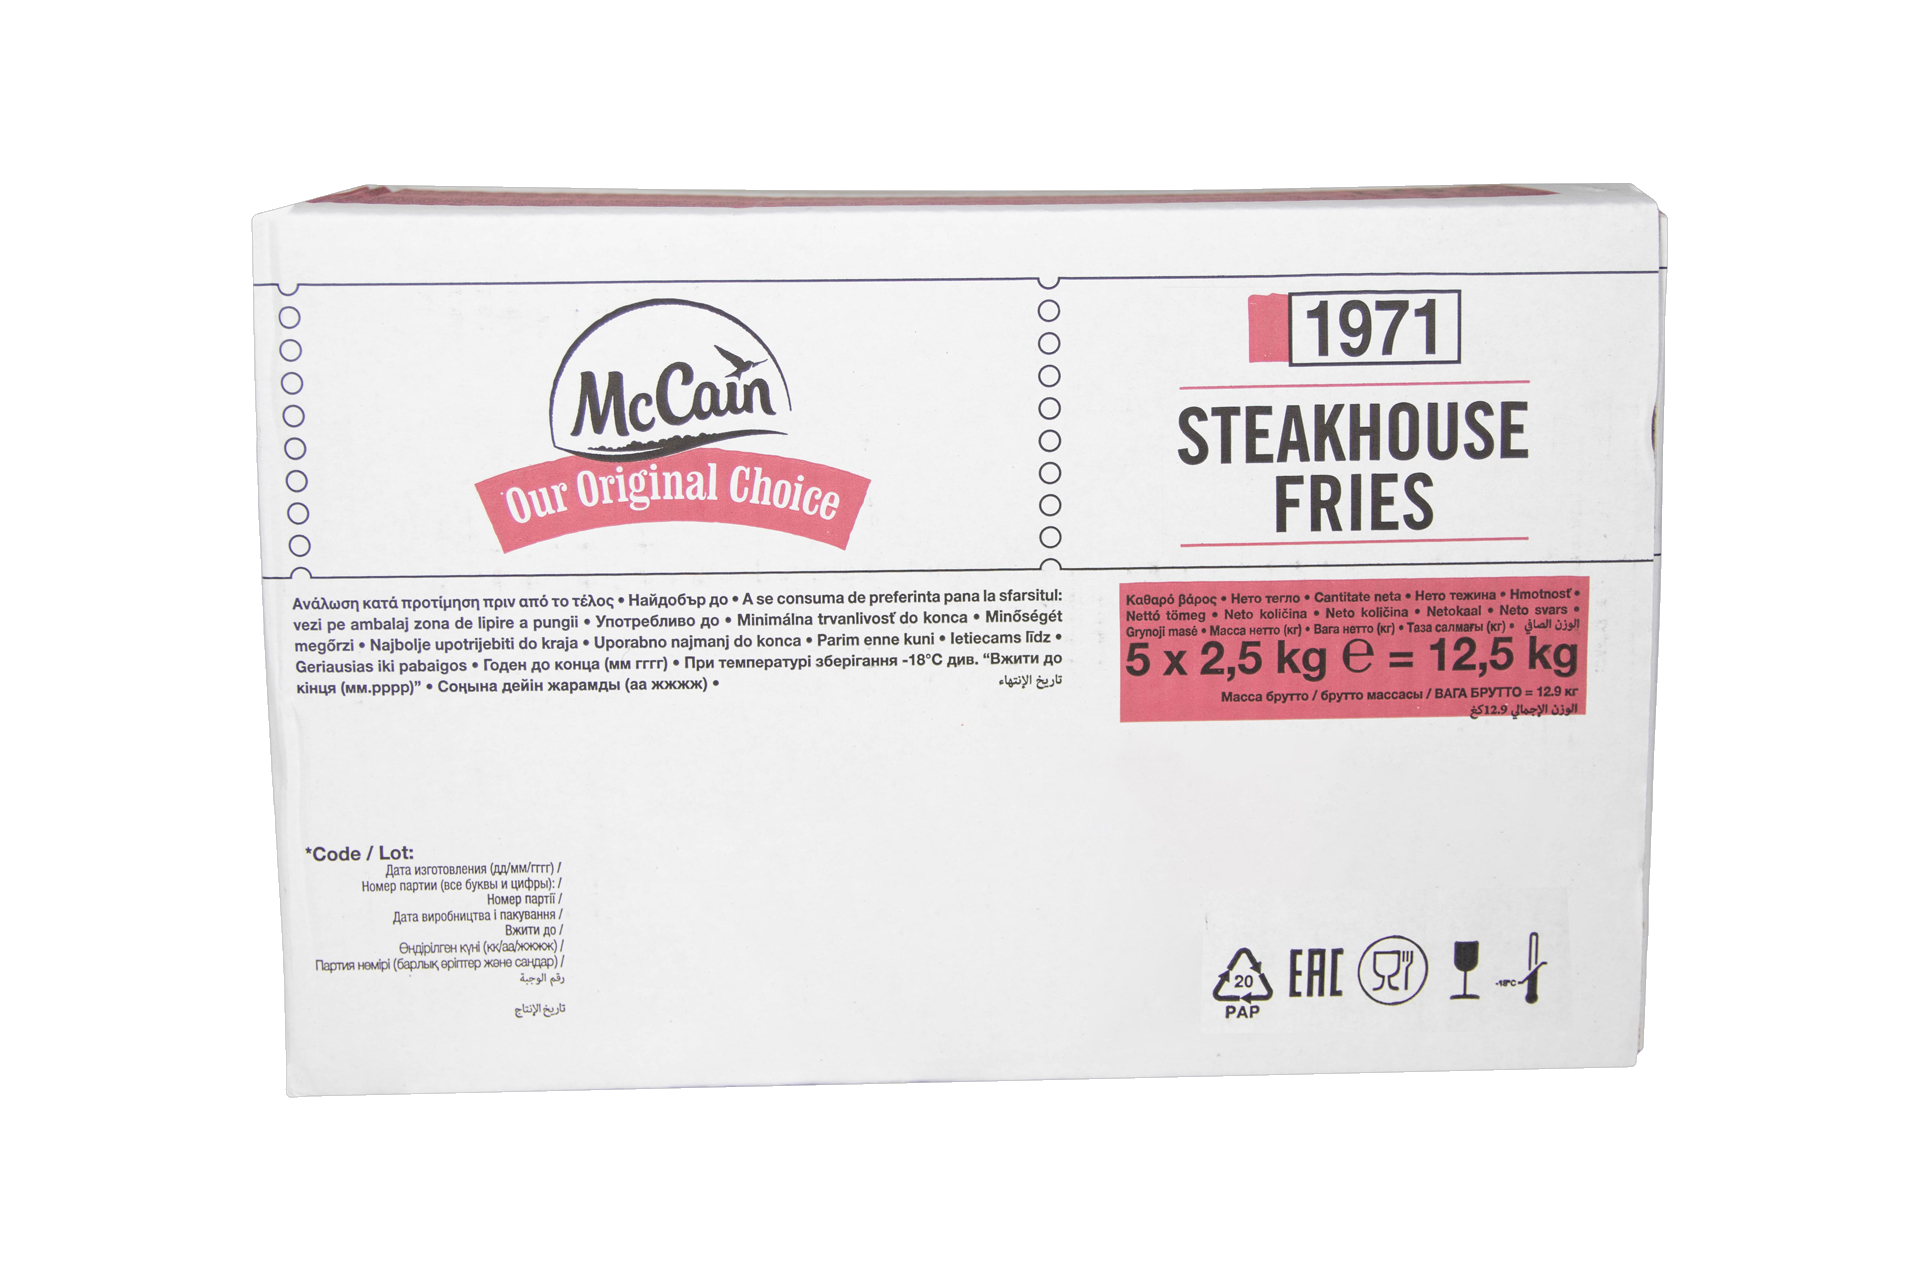 Steakhouse friet (9/18) Merk: McCain